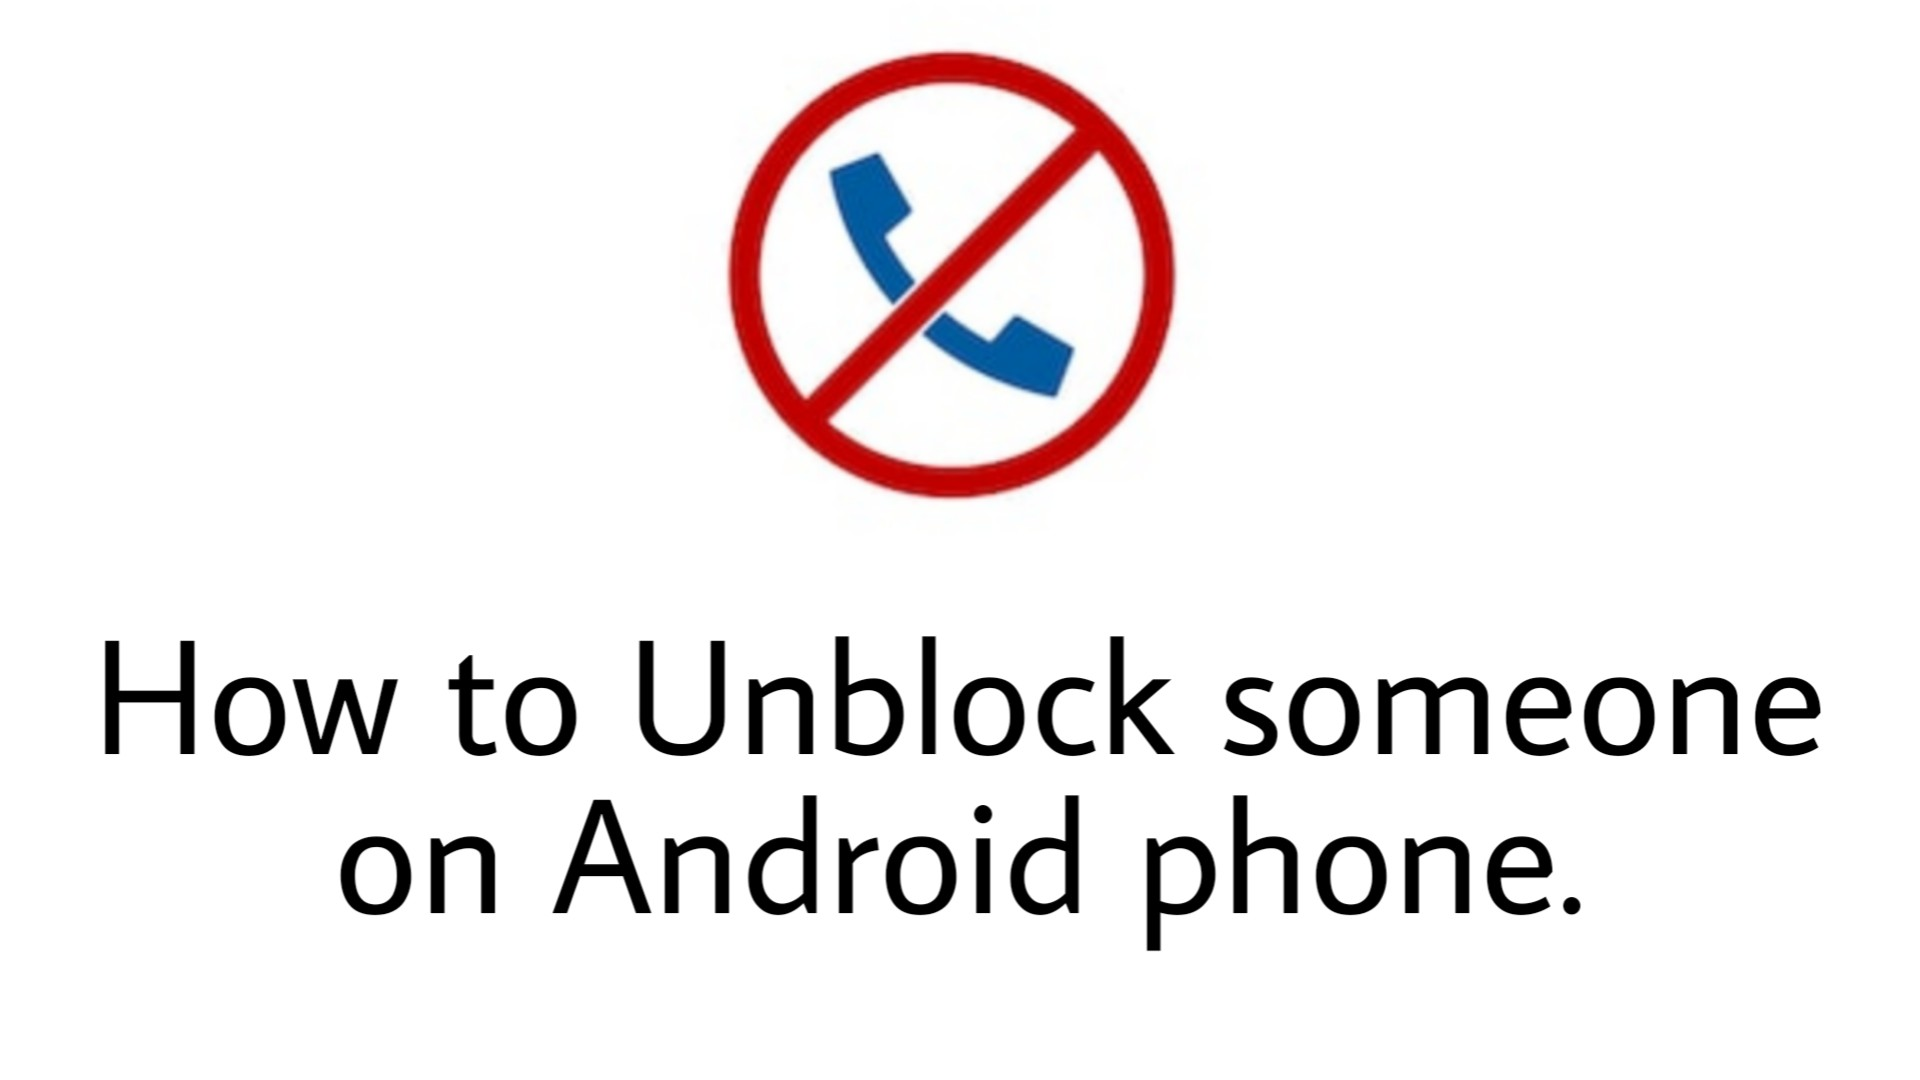 How to unblock someone on Android Smarthphone